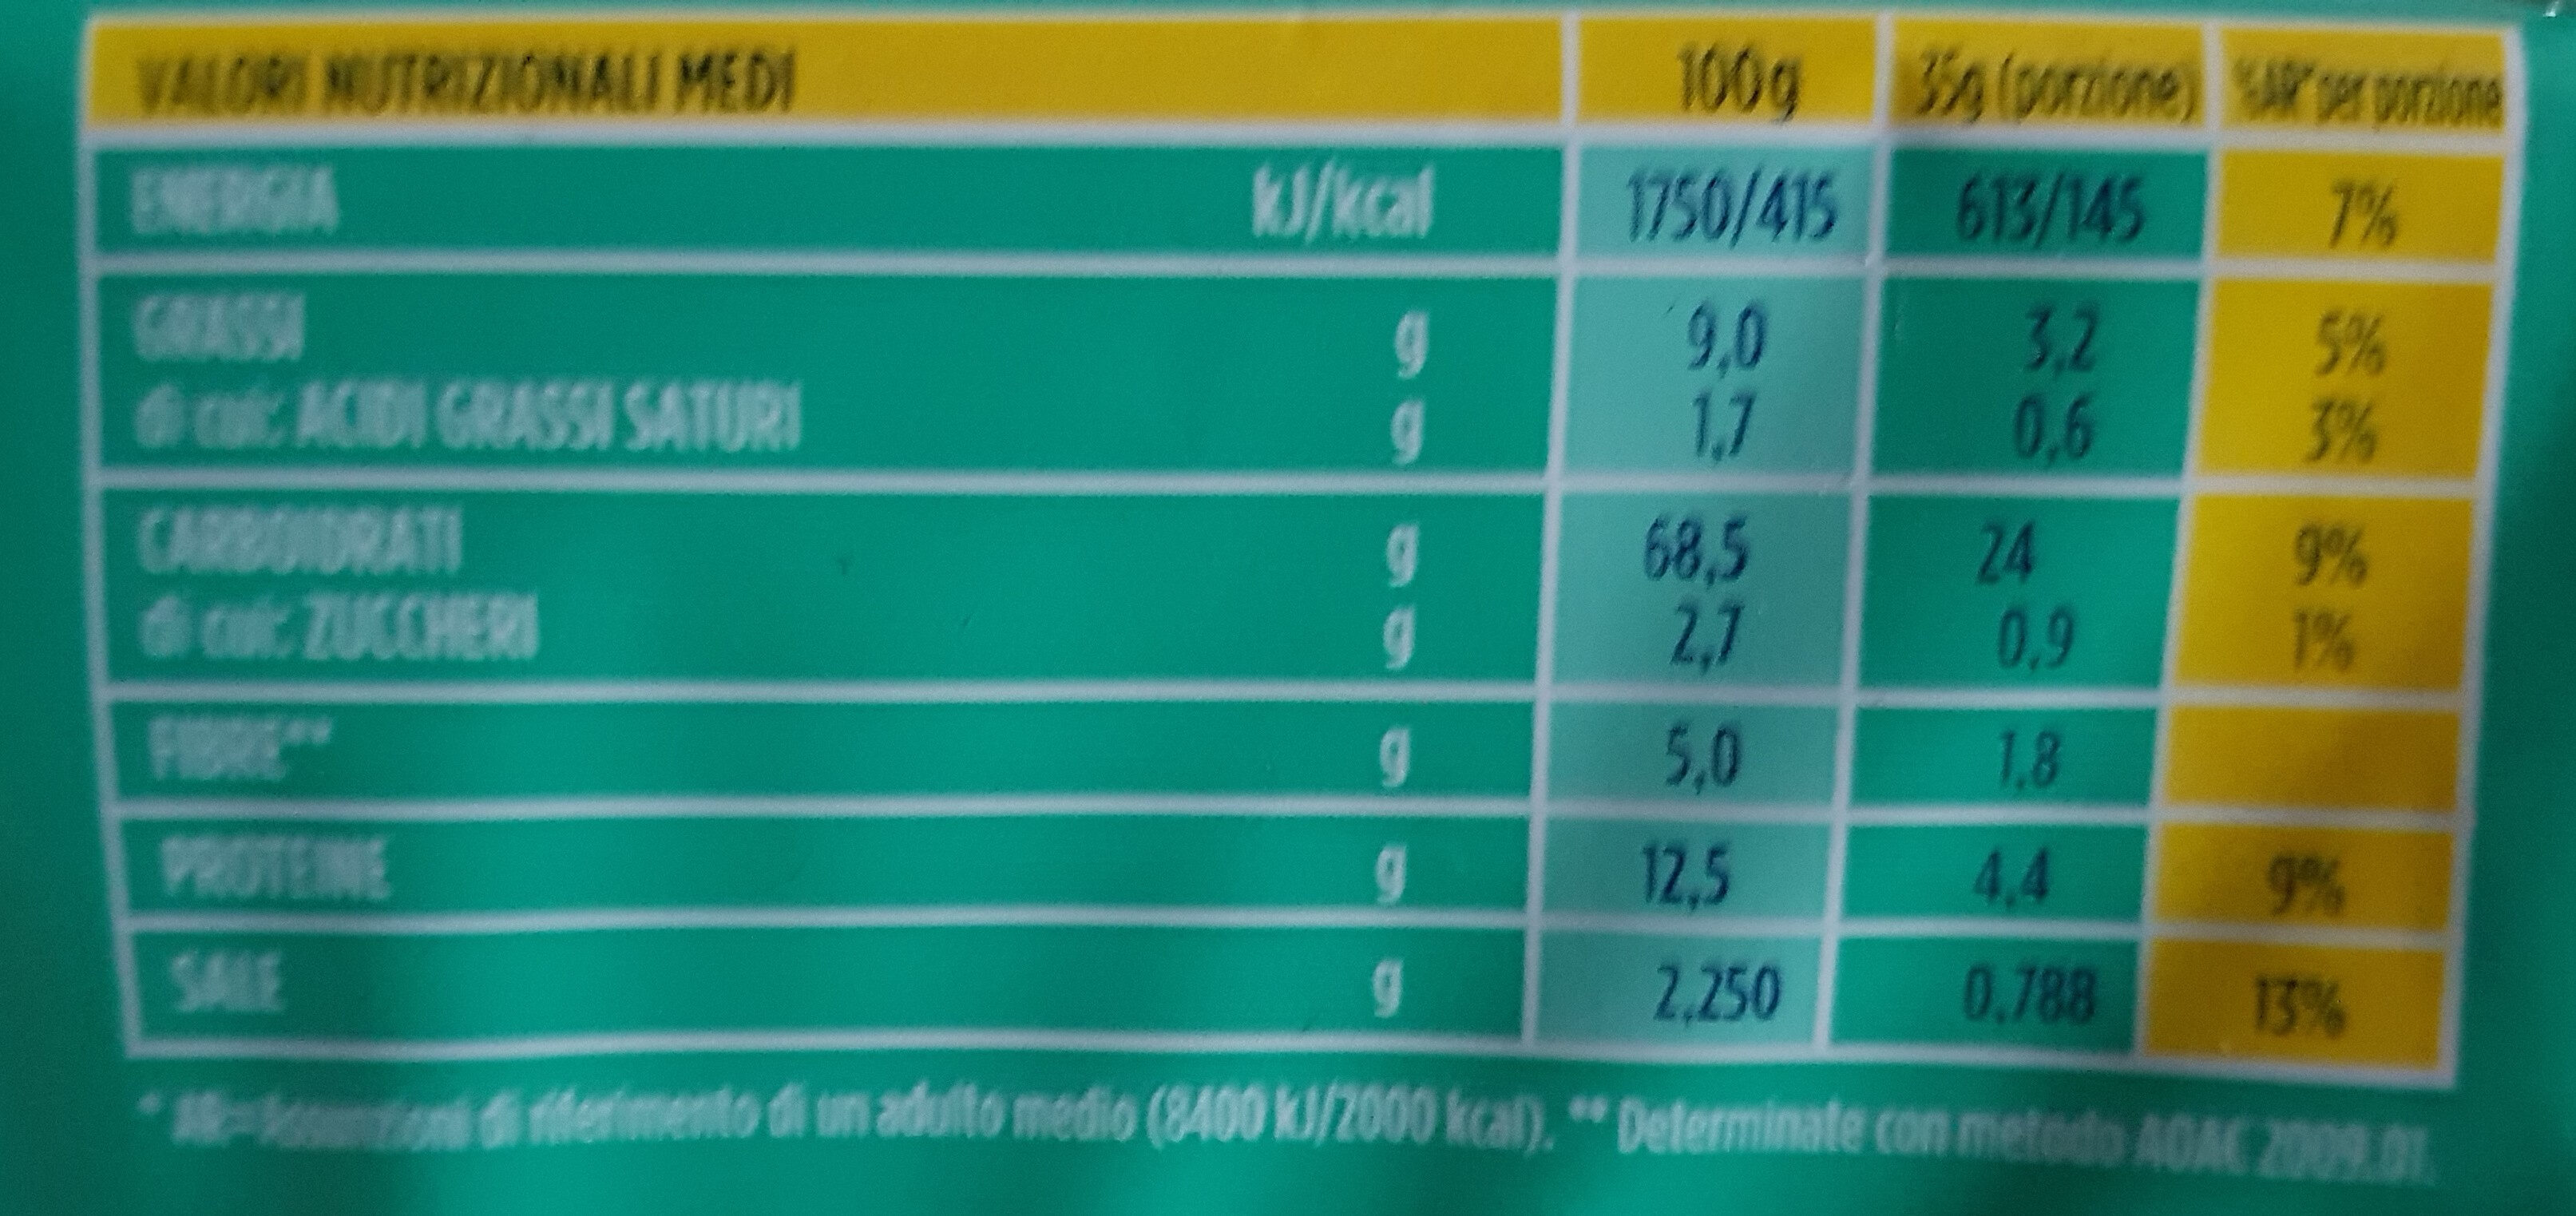 Gran Pavesi Crackers Rosmary 280G - Nutrition facts - fr